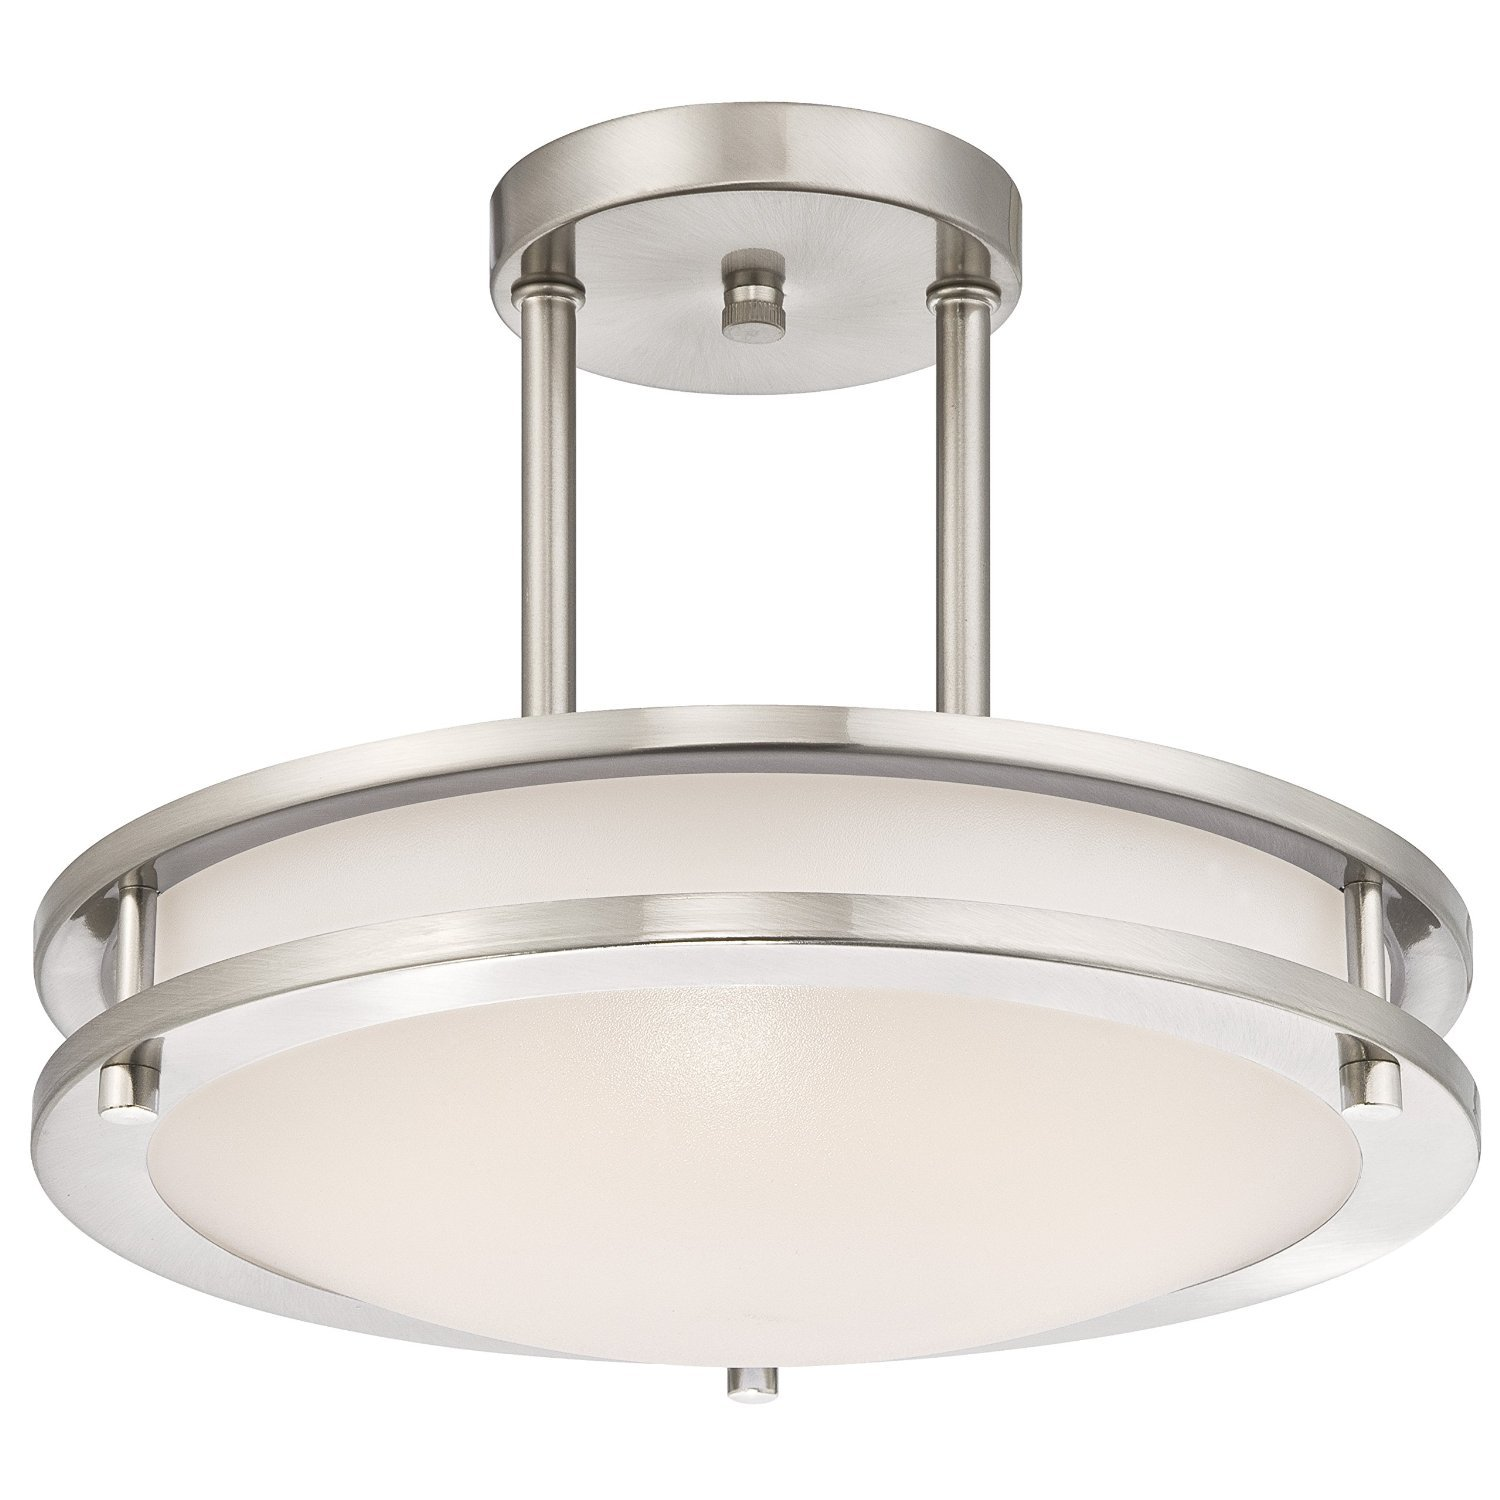 Light Blue™ LED Semi Flush Mount Ceiling Fixture, Antique Brushed Nickel Finish, 3000K Warm White, 1050 Lumens, Dimmable